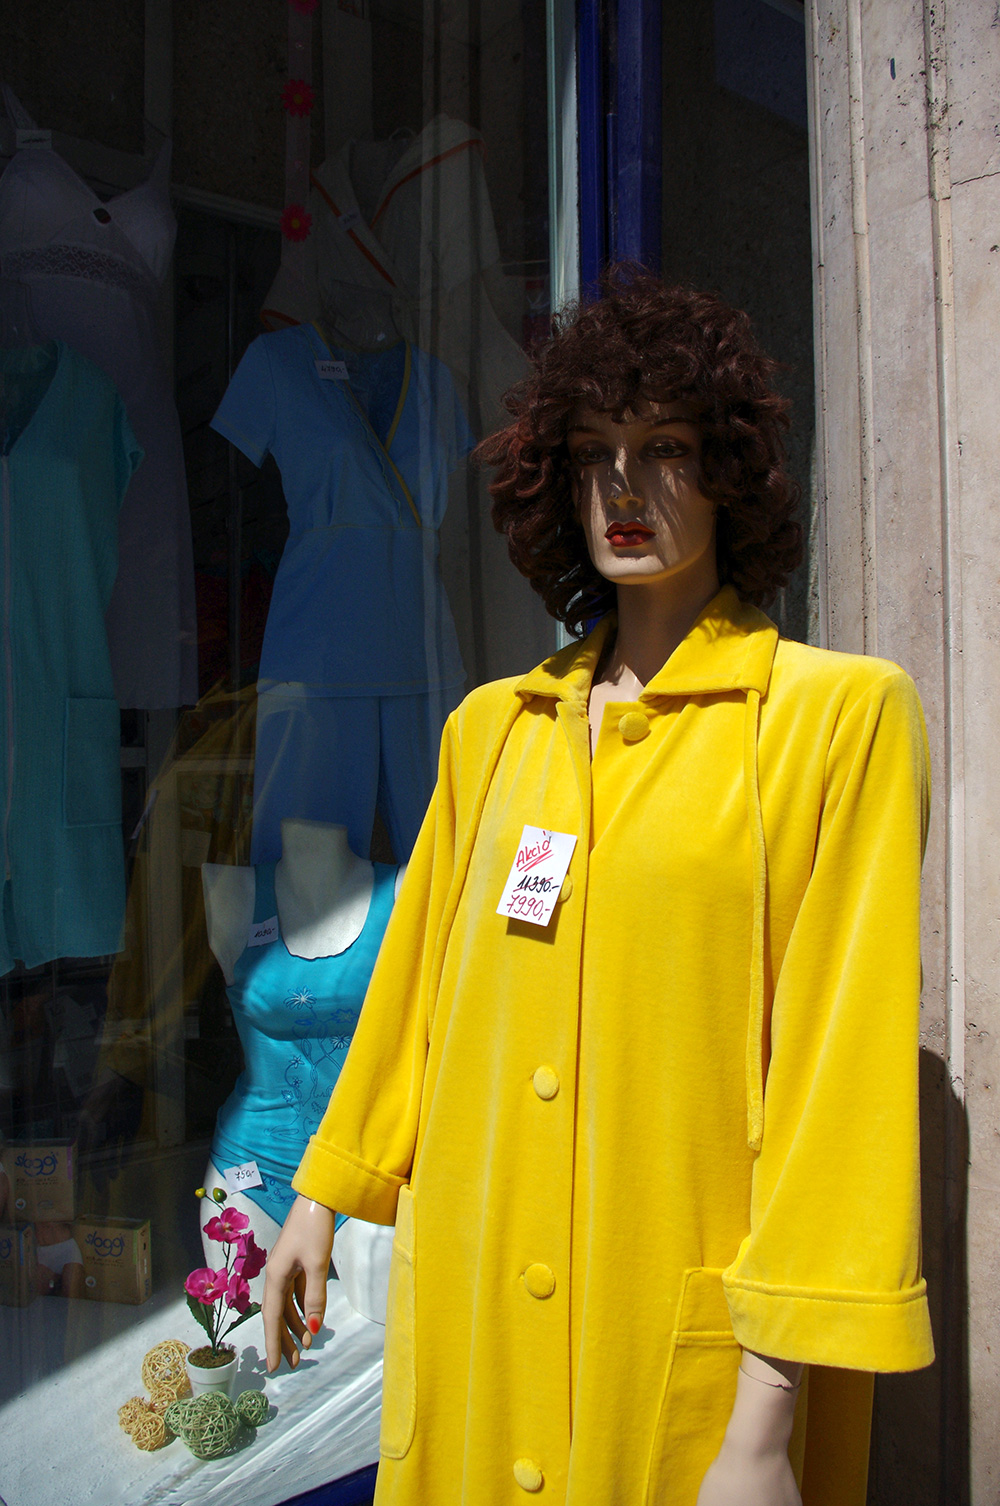 Mannequin in Hungary